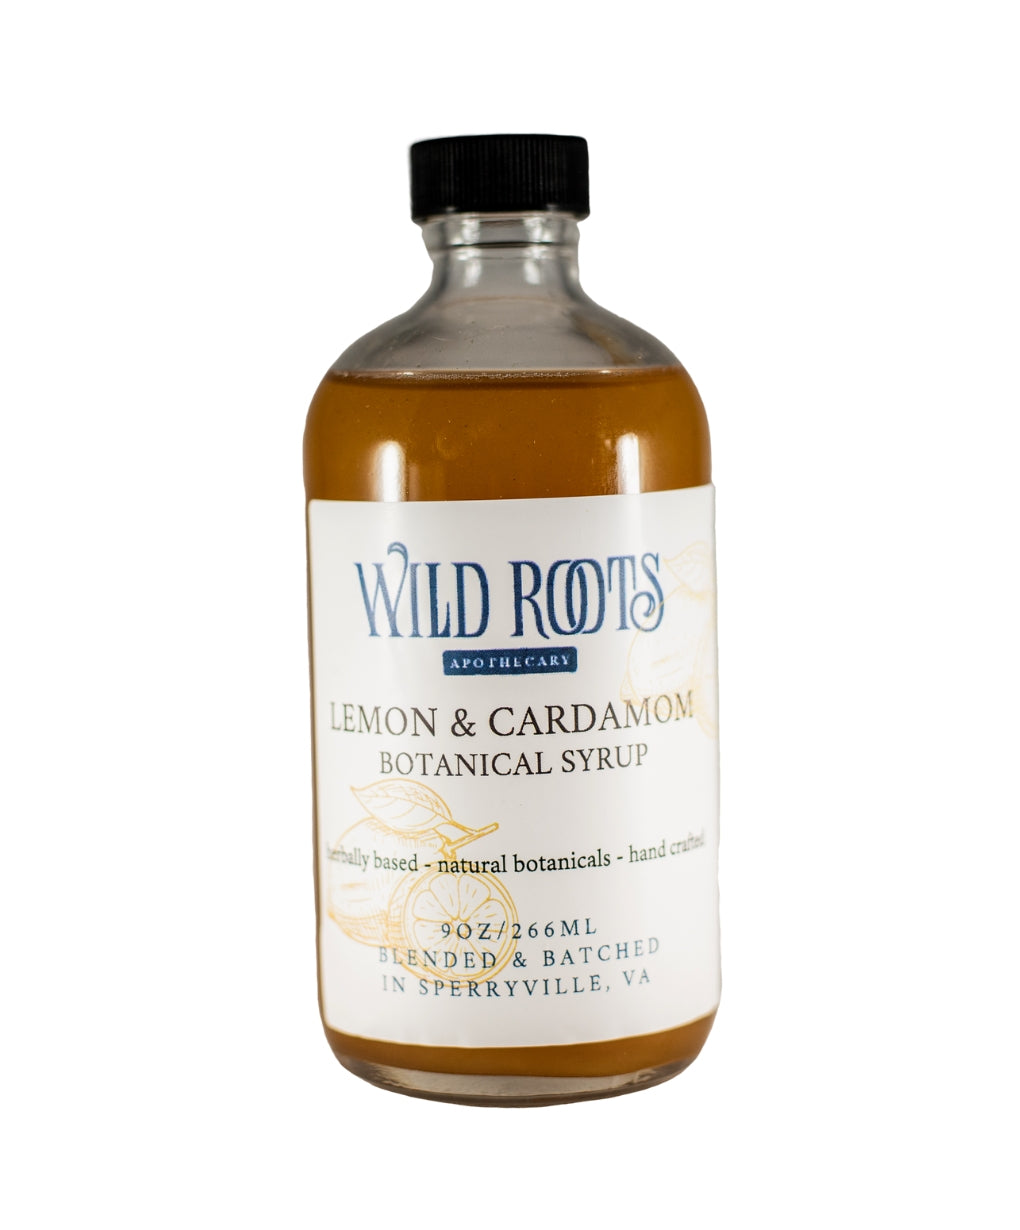 Lemon Cardamom Botanical Syrup